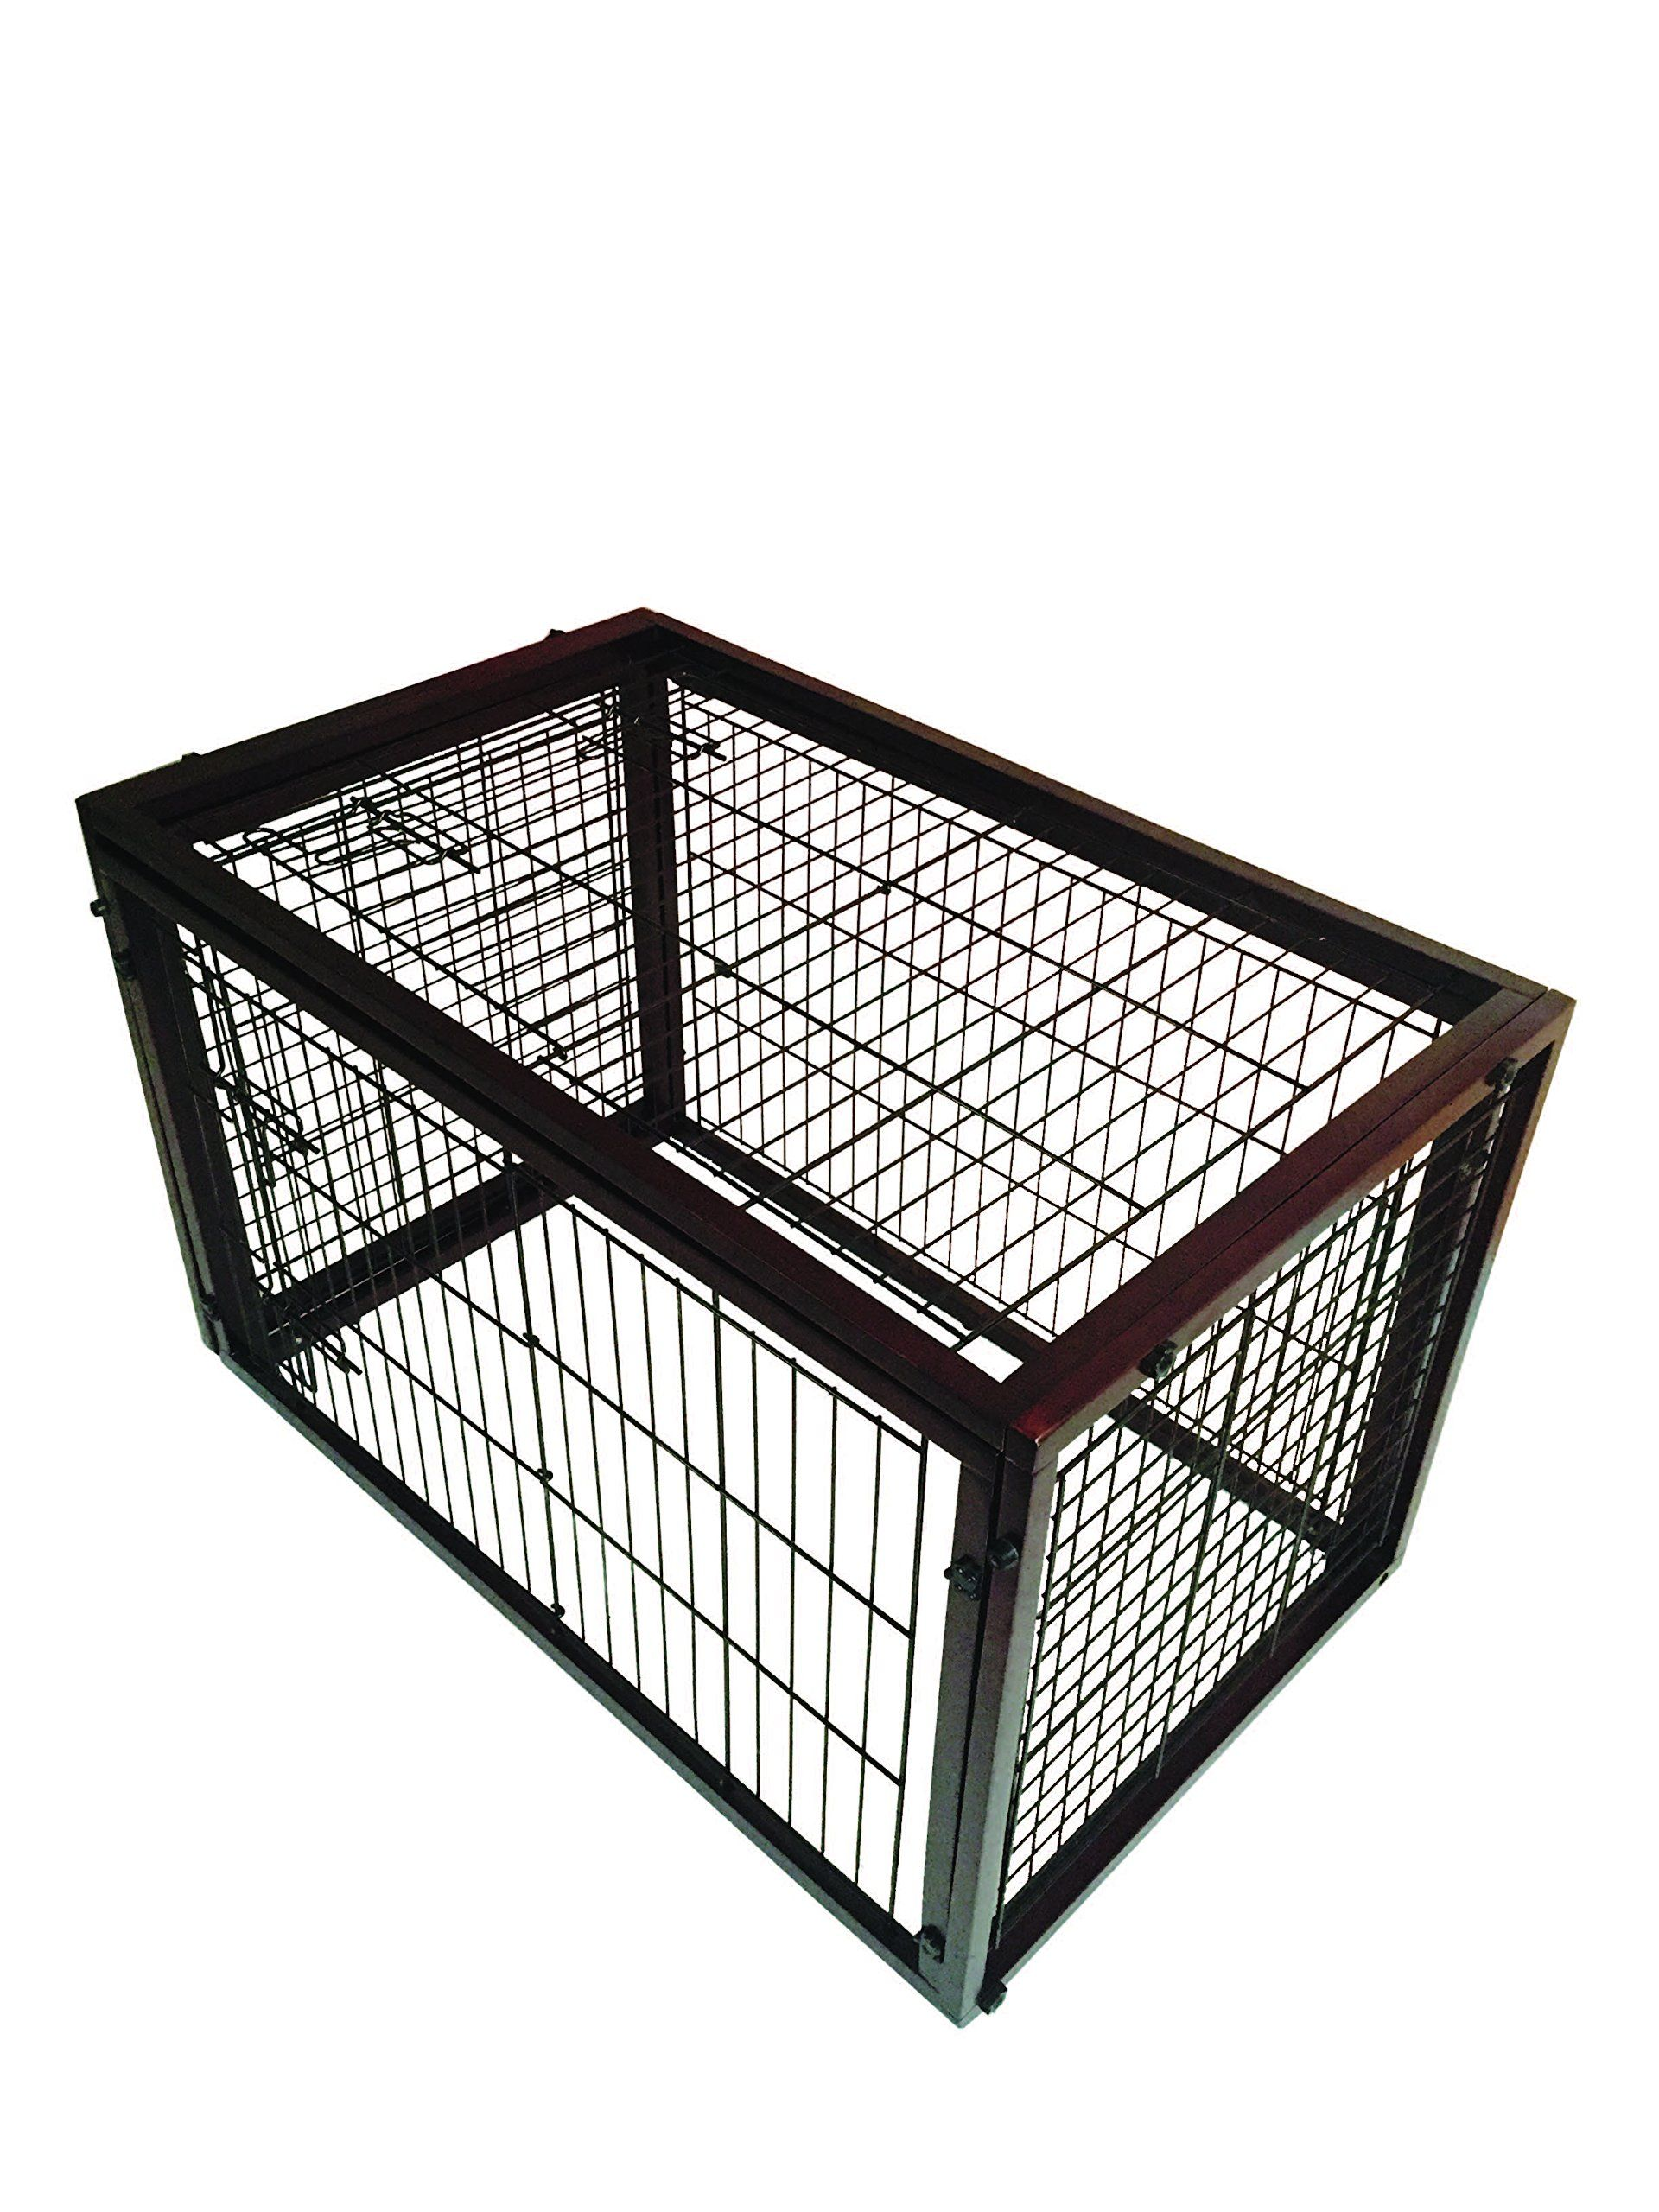 Simply Plus Dog Crate 2017newly Designed Model Solid Wooden Frame Metal W Divider And Tray Small27 6 X 20 X 23 6 Le Dog Crate Crates Pet Supplies